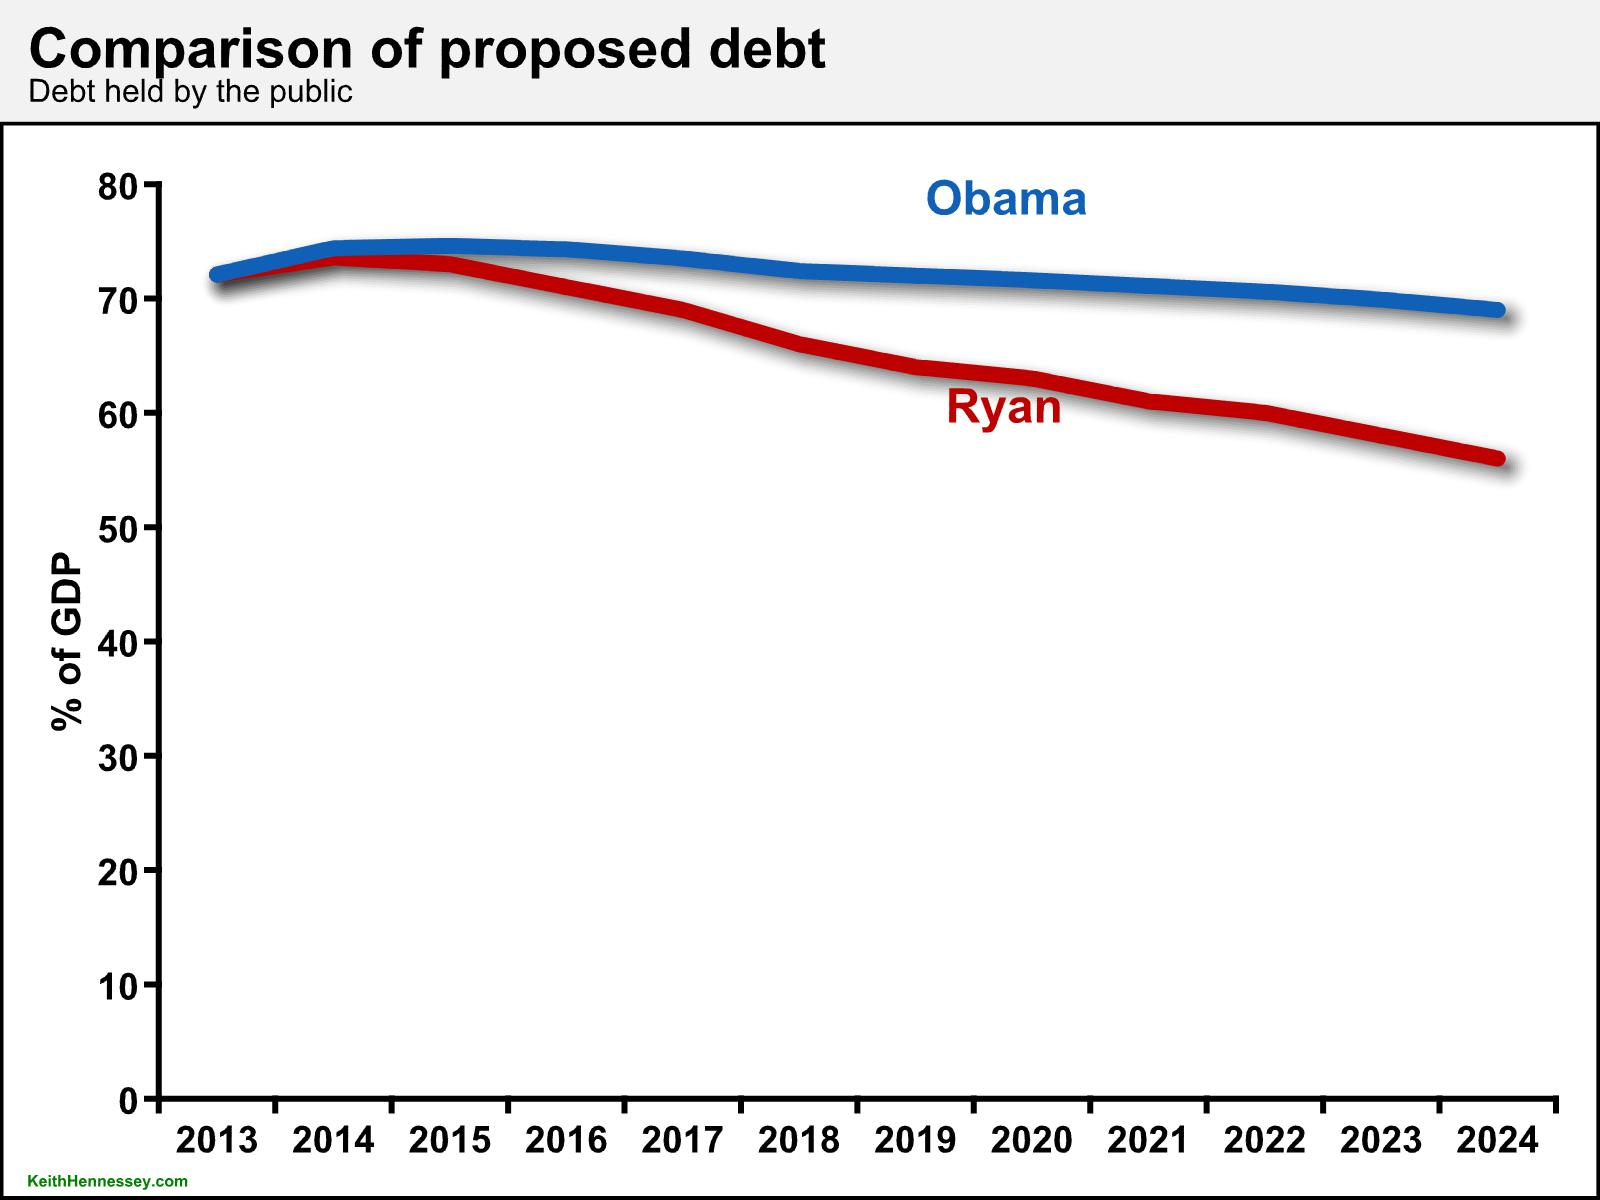 ryan v obama short-term debt (apr 2014)